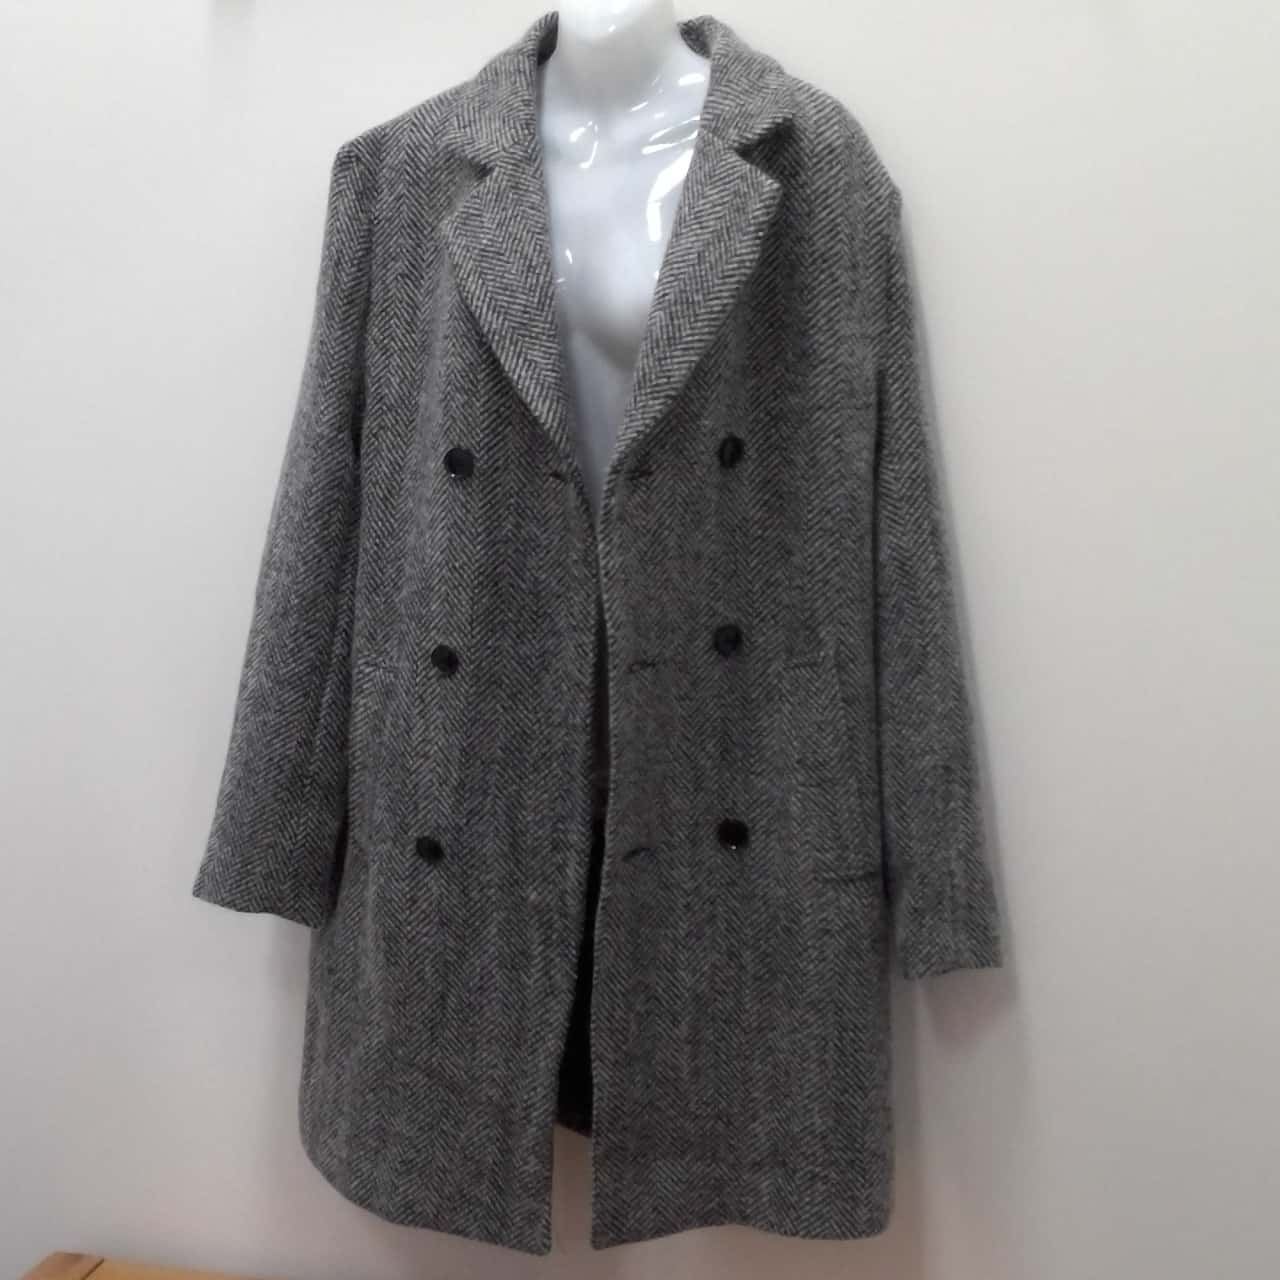 BNWT Mens  BOO HOO MAN DOUBLE BREASTED TRENCH COAT Size S Grey/White